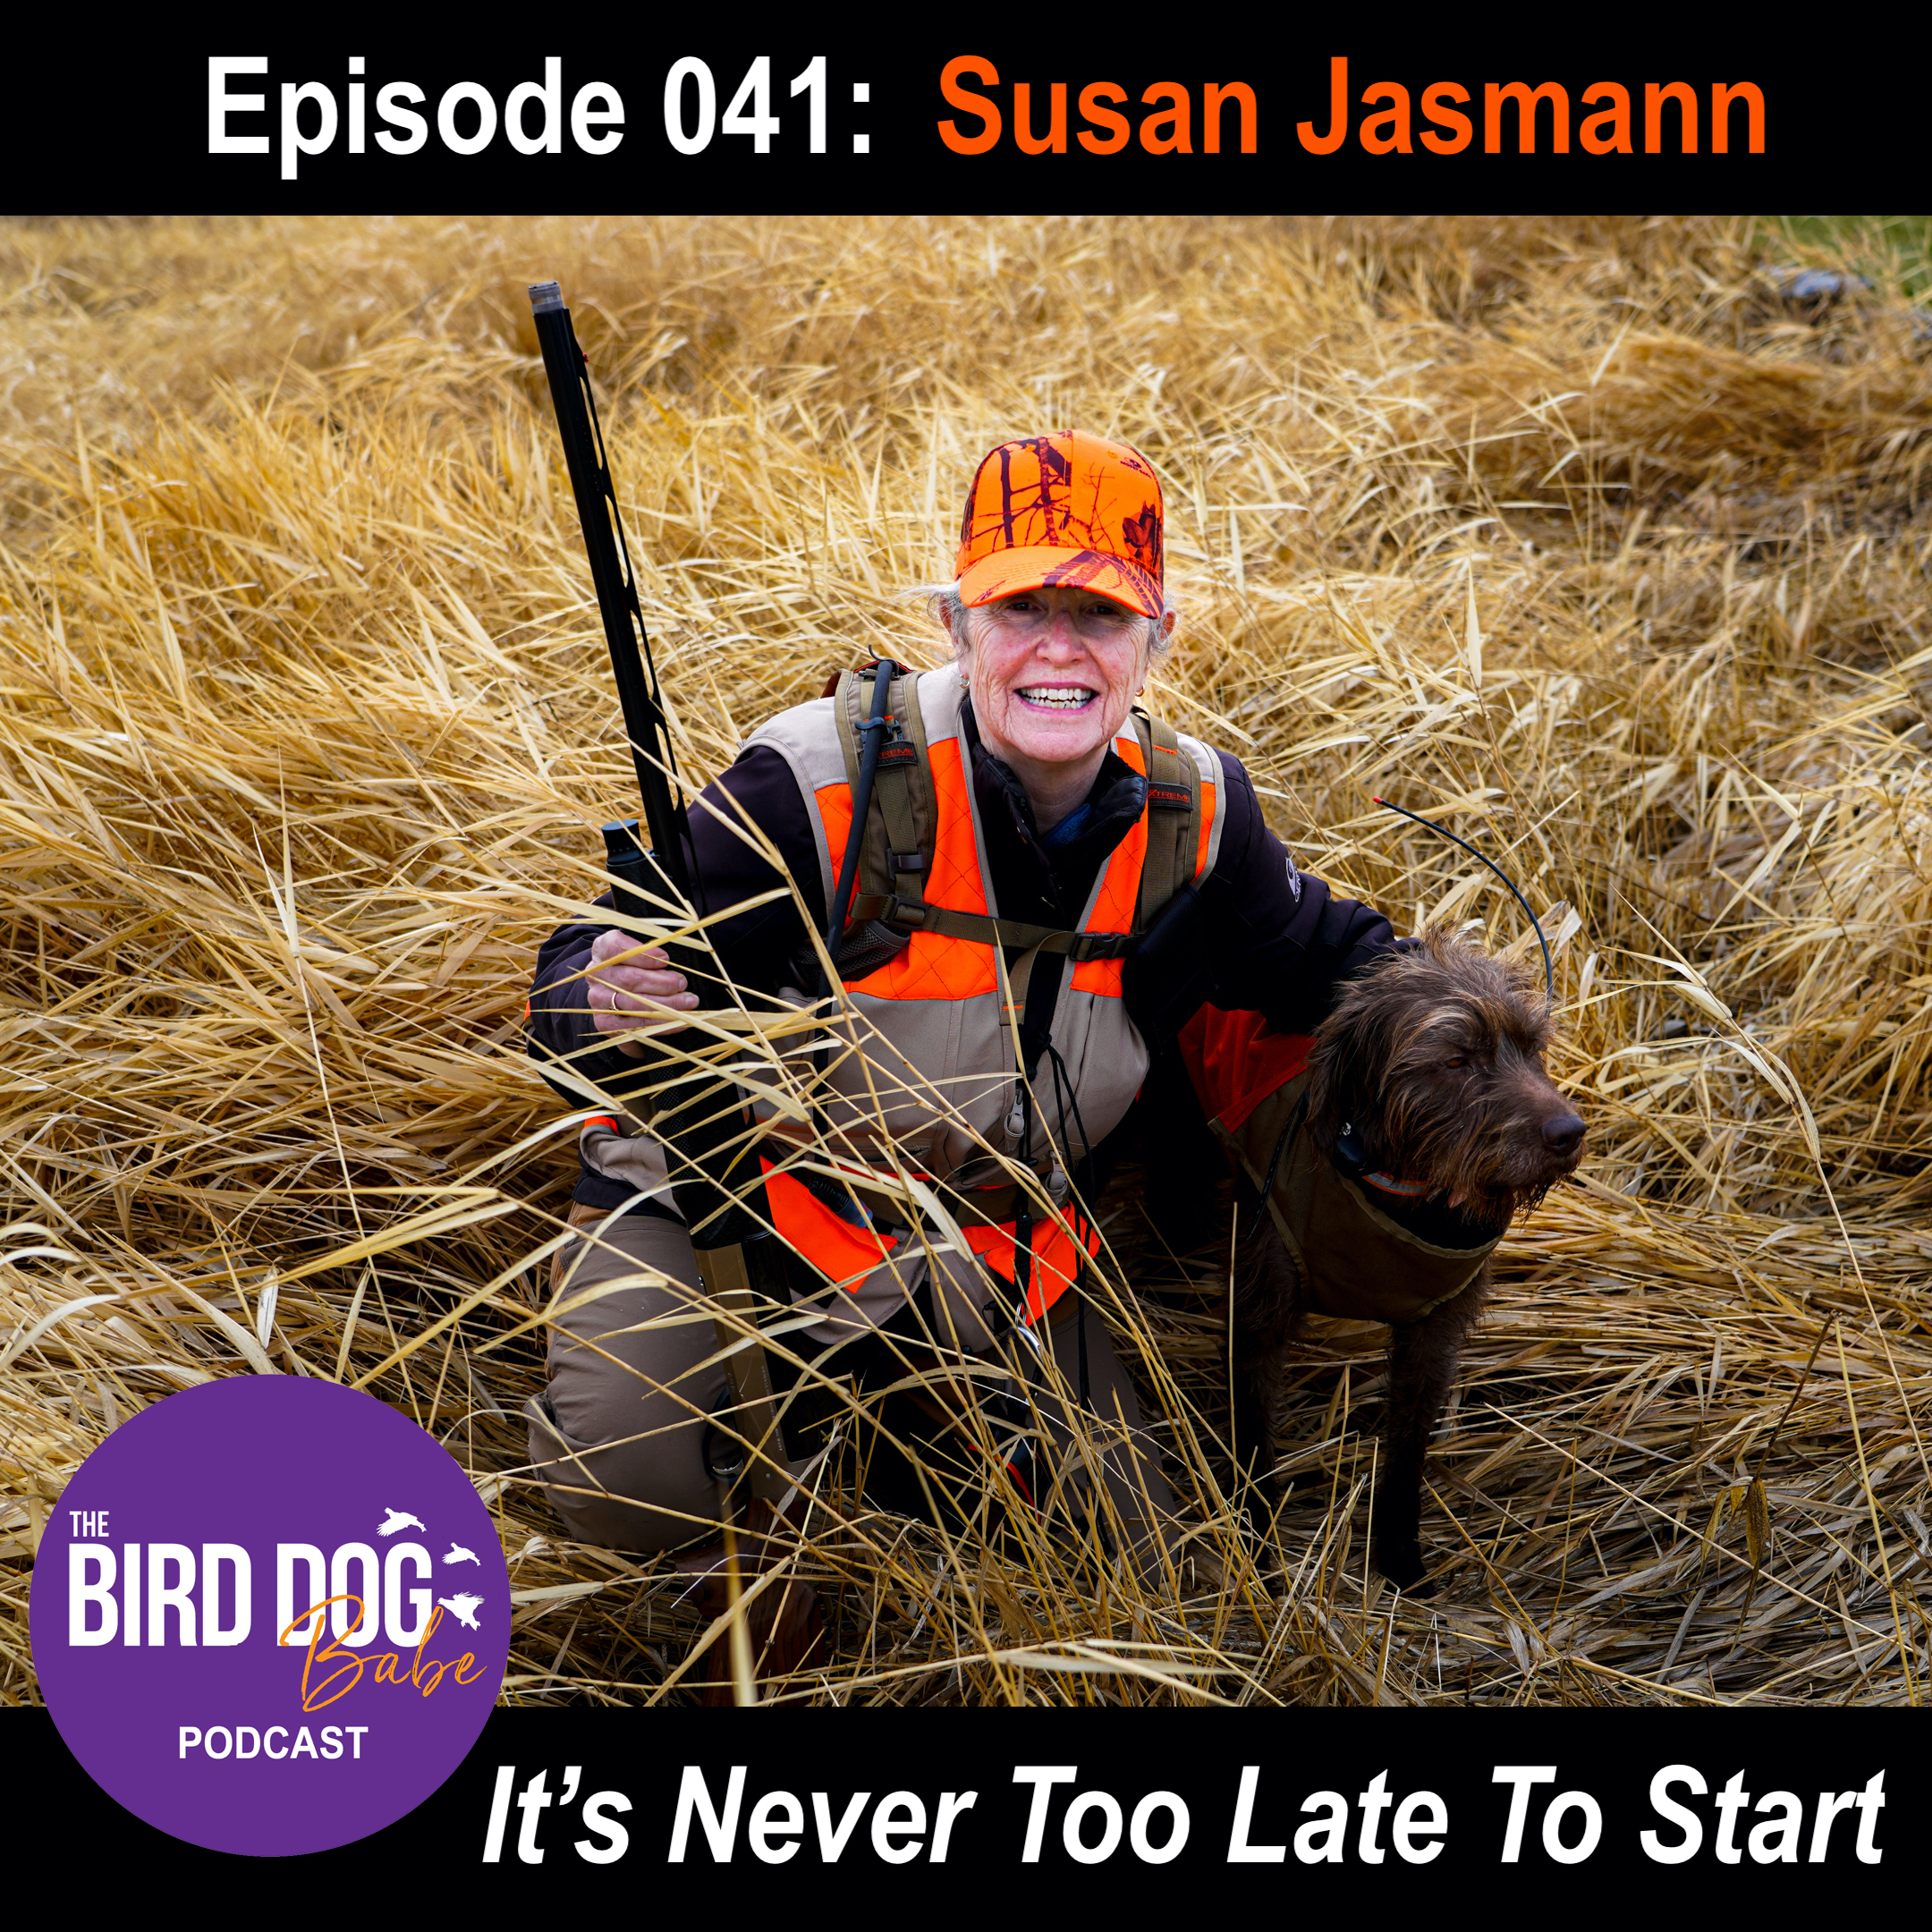 Episode 041: It's Never Too Late To Start w/ Susan Jasmann